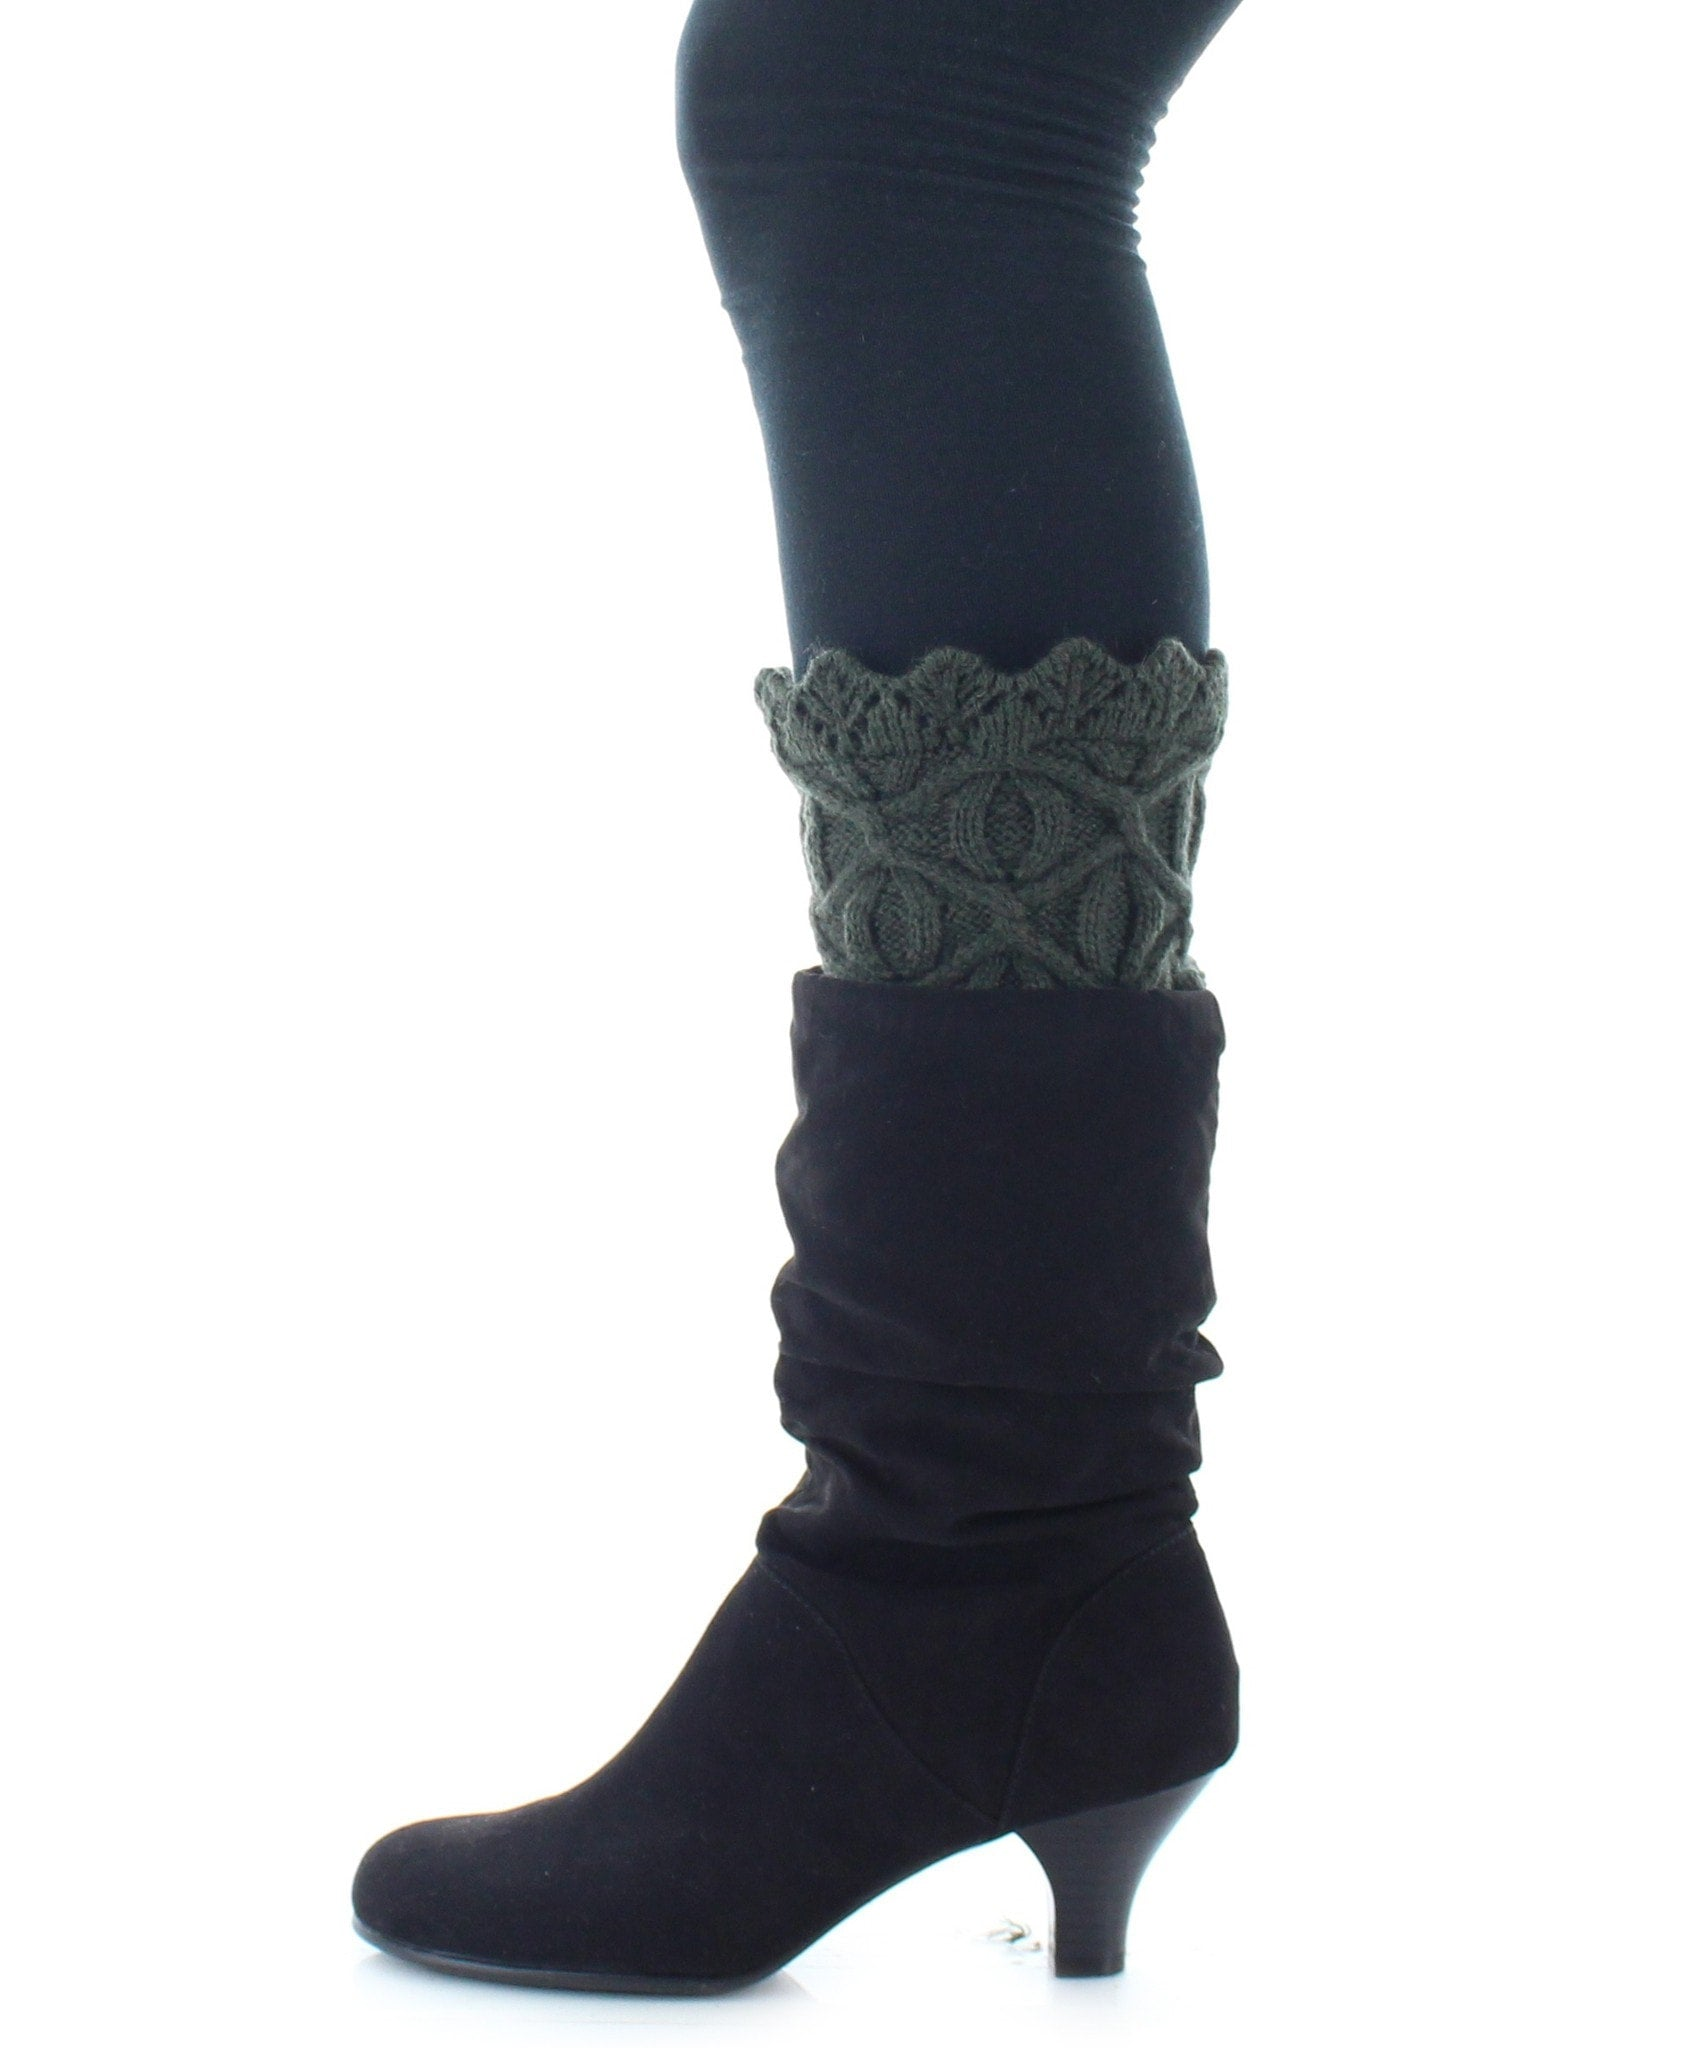 Boot Toppers | Knit Socks | Diamond & Circular Pattern - MeMoi - 3